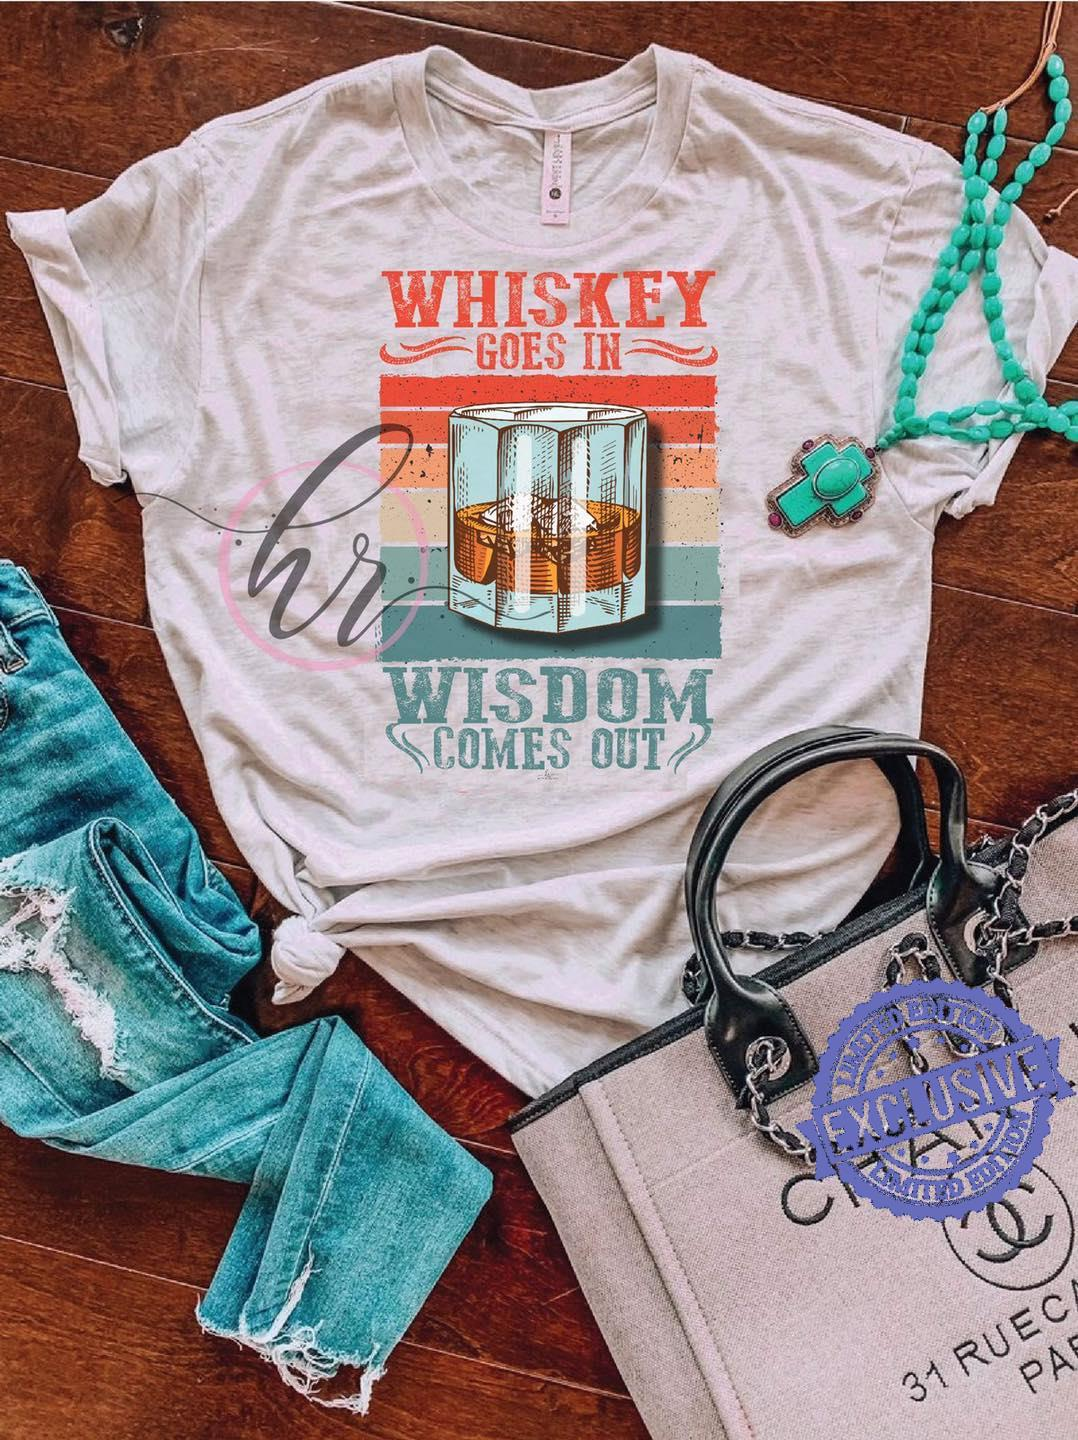 Whiskey goes in wisdom come out shirt